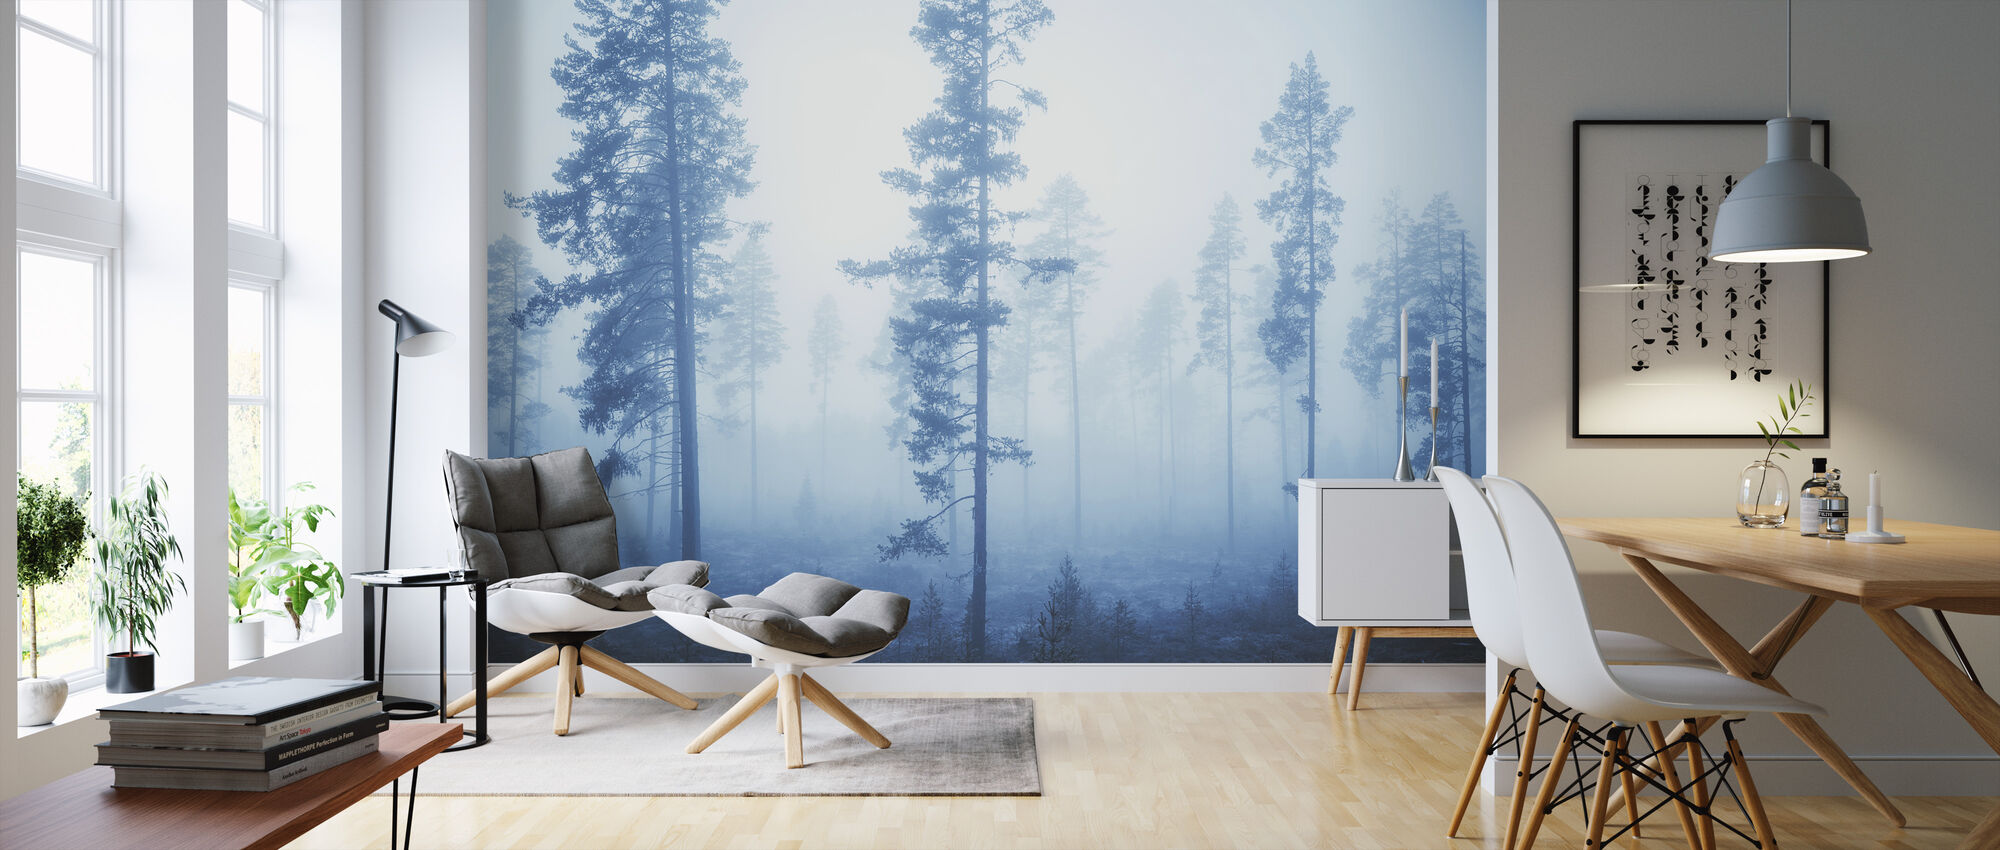 Blue Breeze - Wallpaper - Living Room